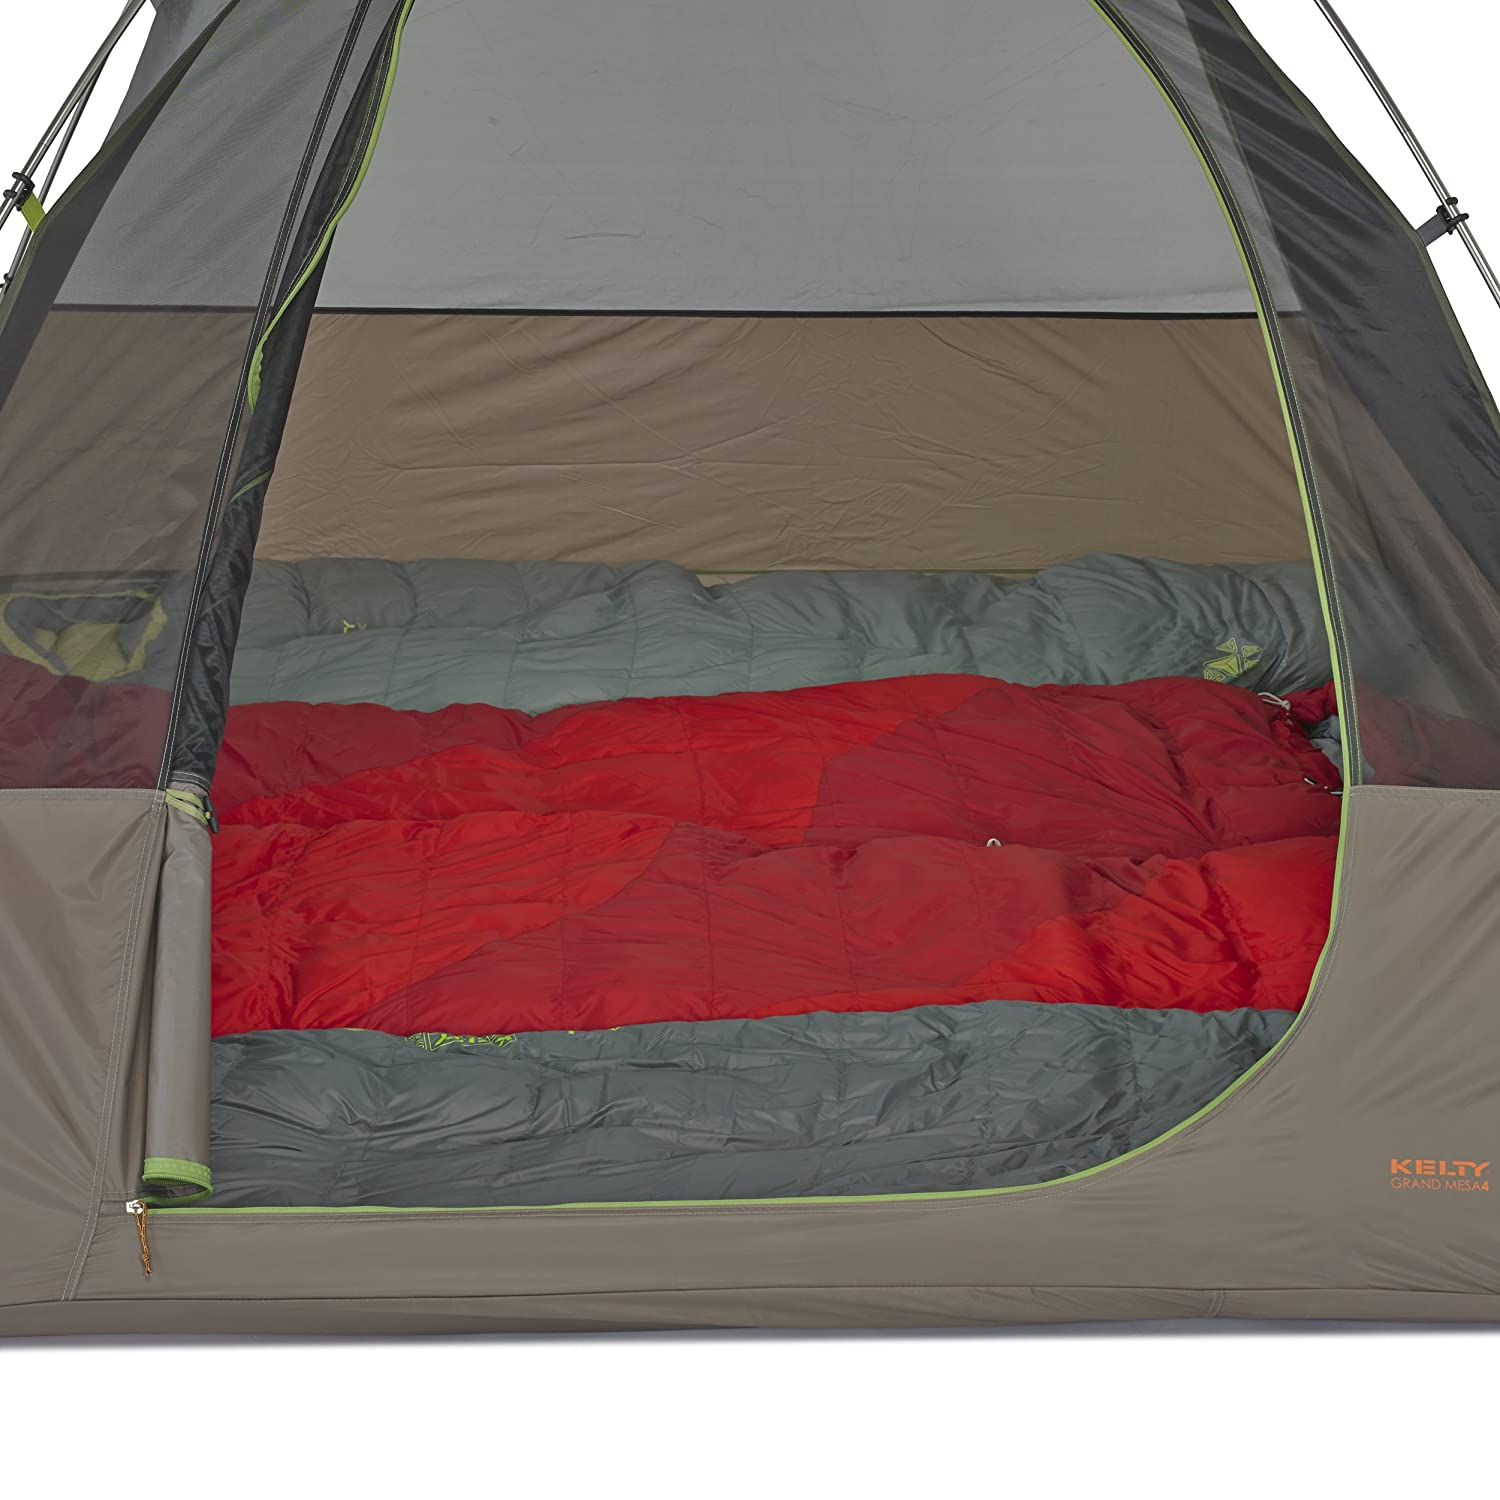 sc 1 st  Amazon.com & Amazon.com : Kelty Grand Mesa 4 Tent : Sports u0026 Outdoors